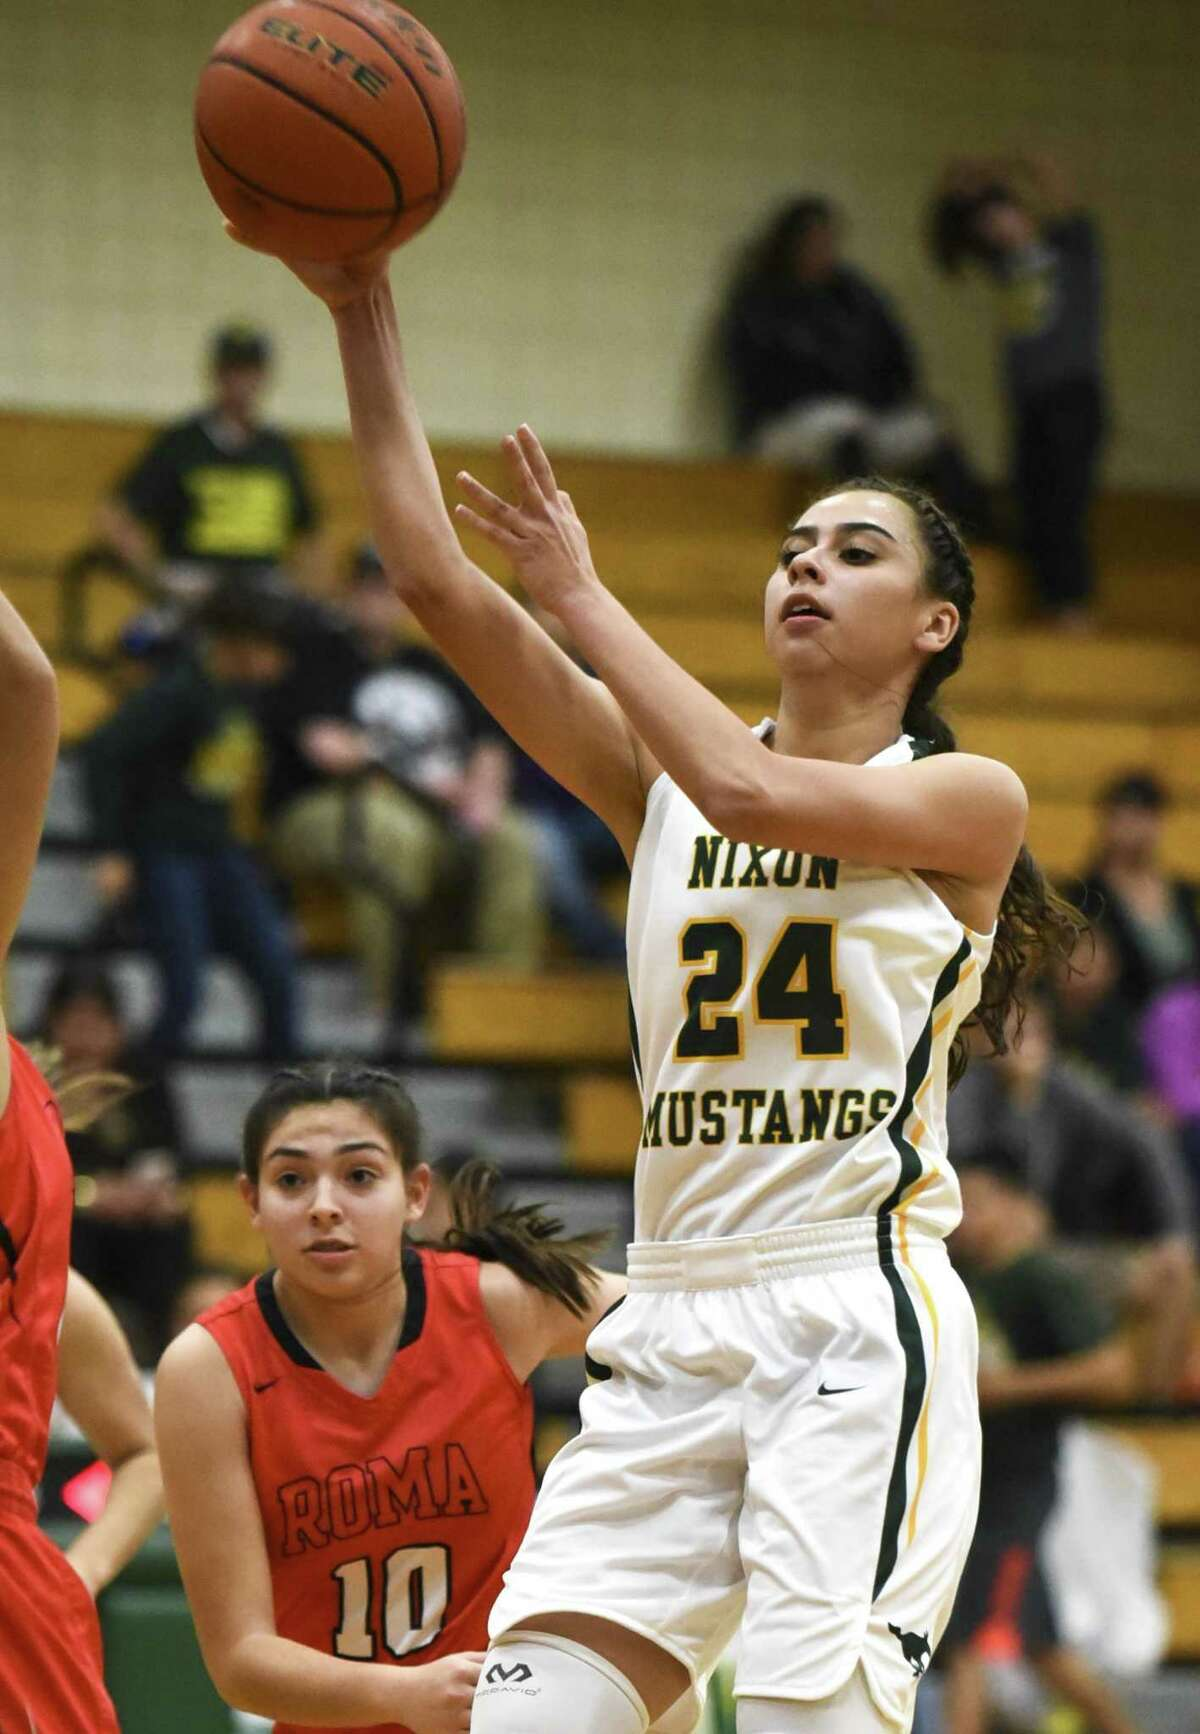 Nixon's Jennifer Pena was one of four Laredo athletes named to an All-Region team by the TABC.